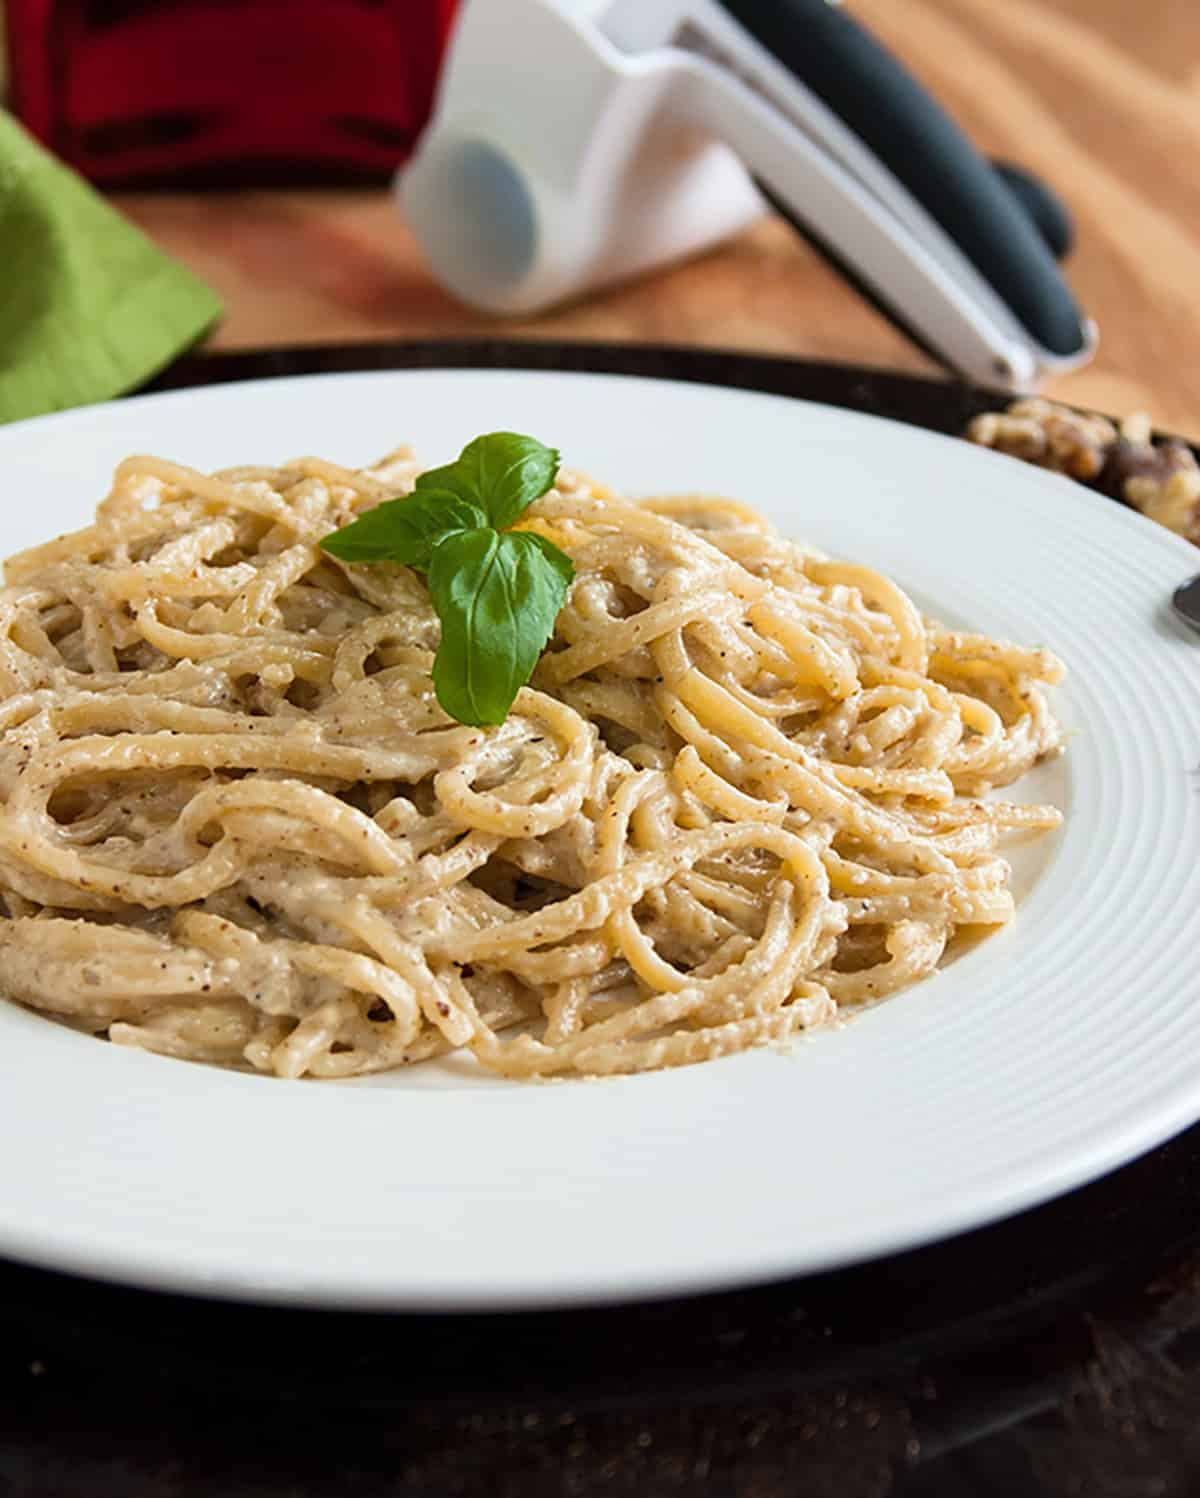 creamy linguine with walnuts, basil on white plate, cheese grater